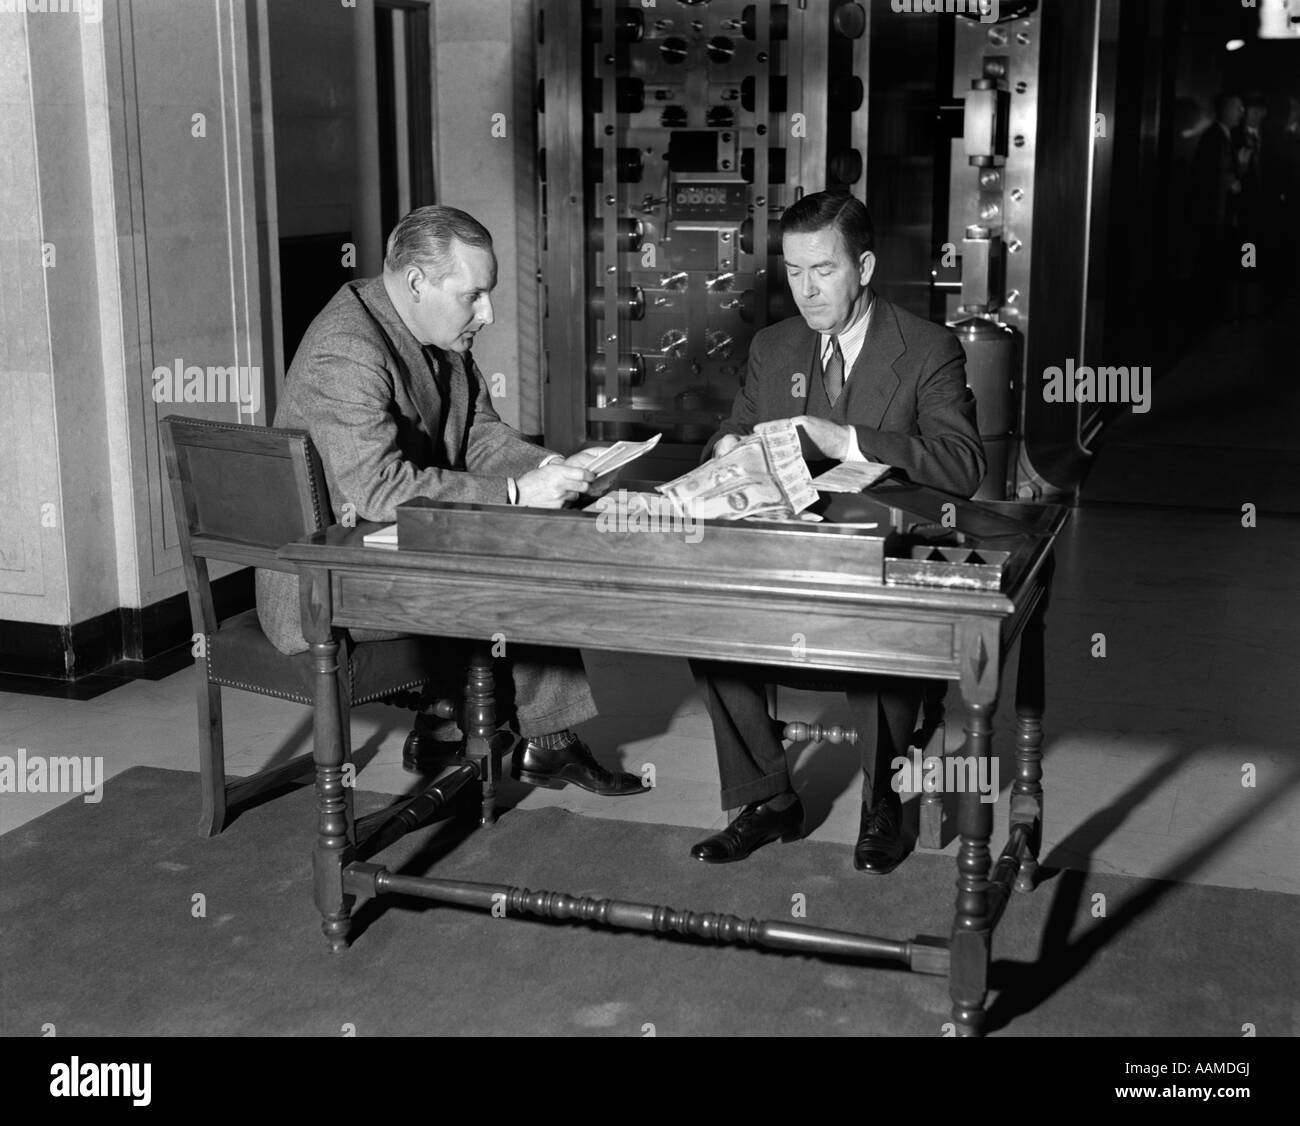 1930s TWO MEN SEATED AT TABLE BEFORE BANK VAULT SAFE DEPOSIT BOX CLIPPING COUPONS FINANCE SECURITY - Stock Image